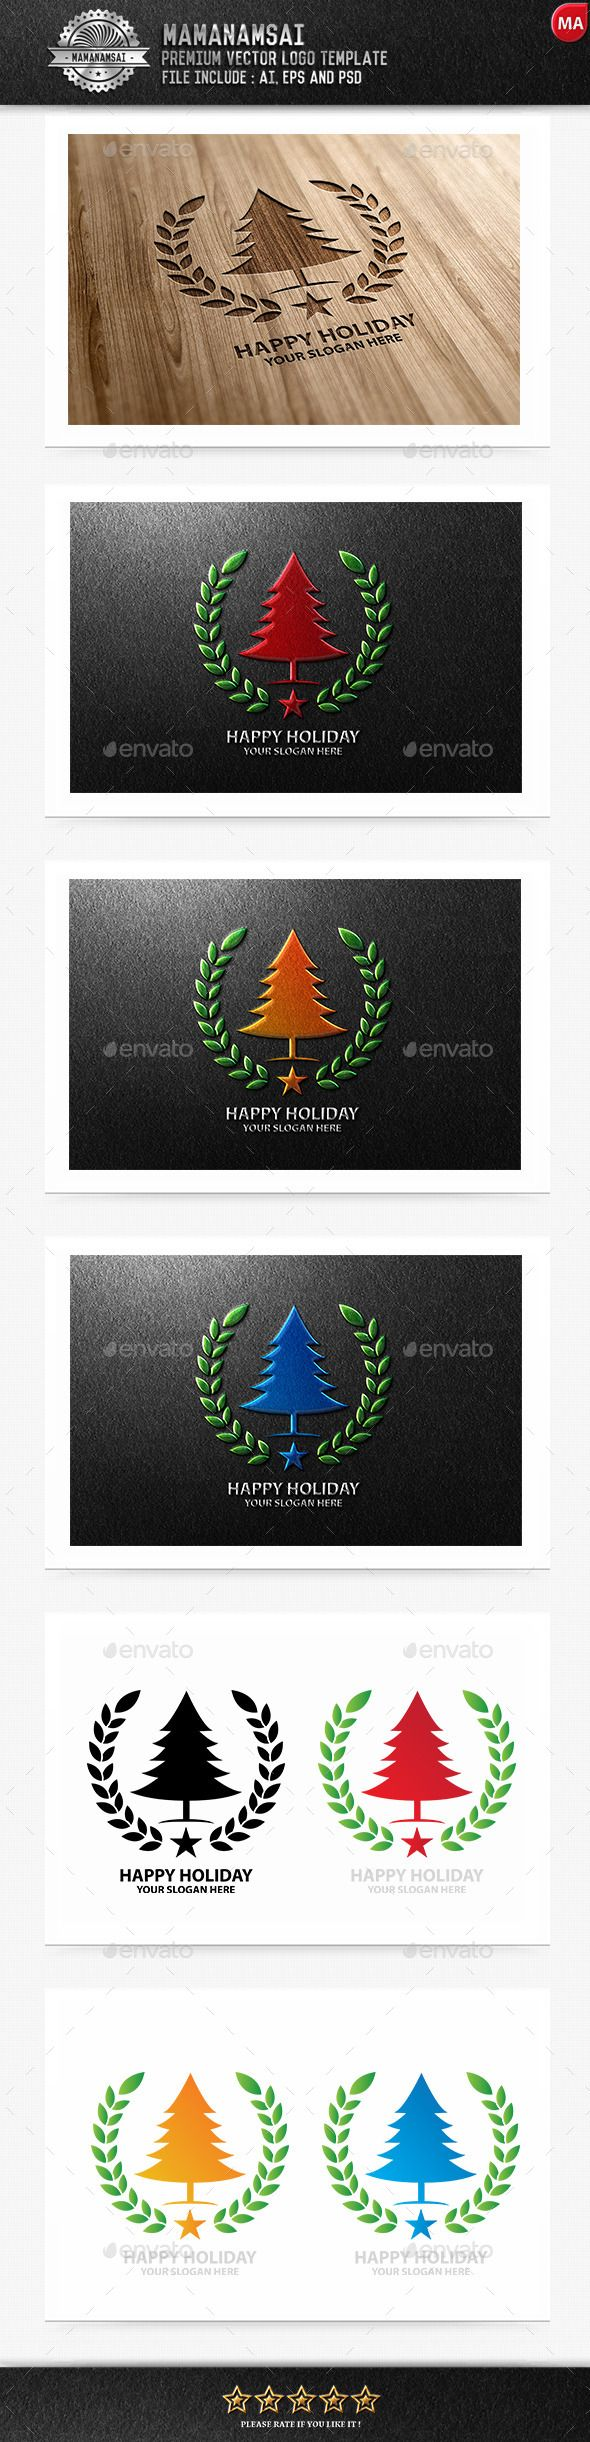 Happy Holiday Logo — Photoshop PSD #xmas #natal • Available here → https://graphicriver.net/item/happy-holiday-logo/9643459?ref=pxcr